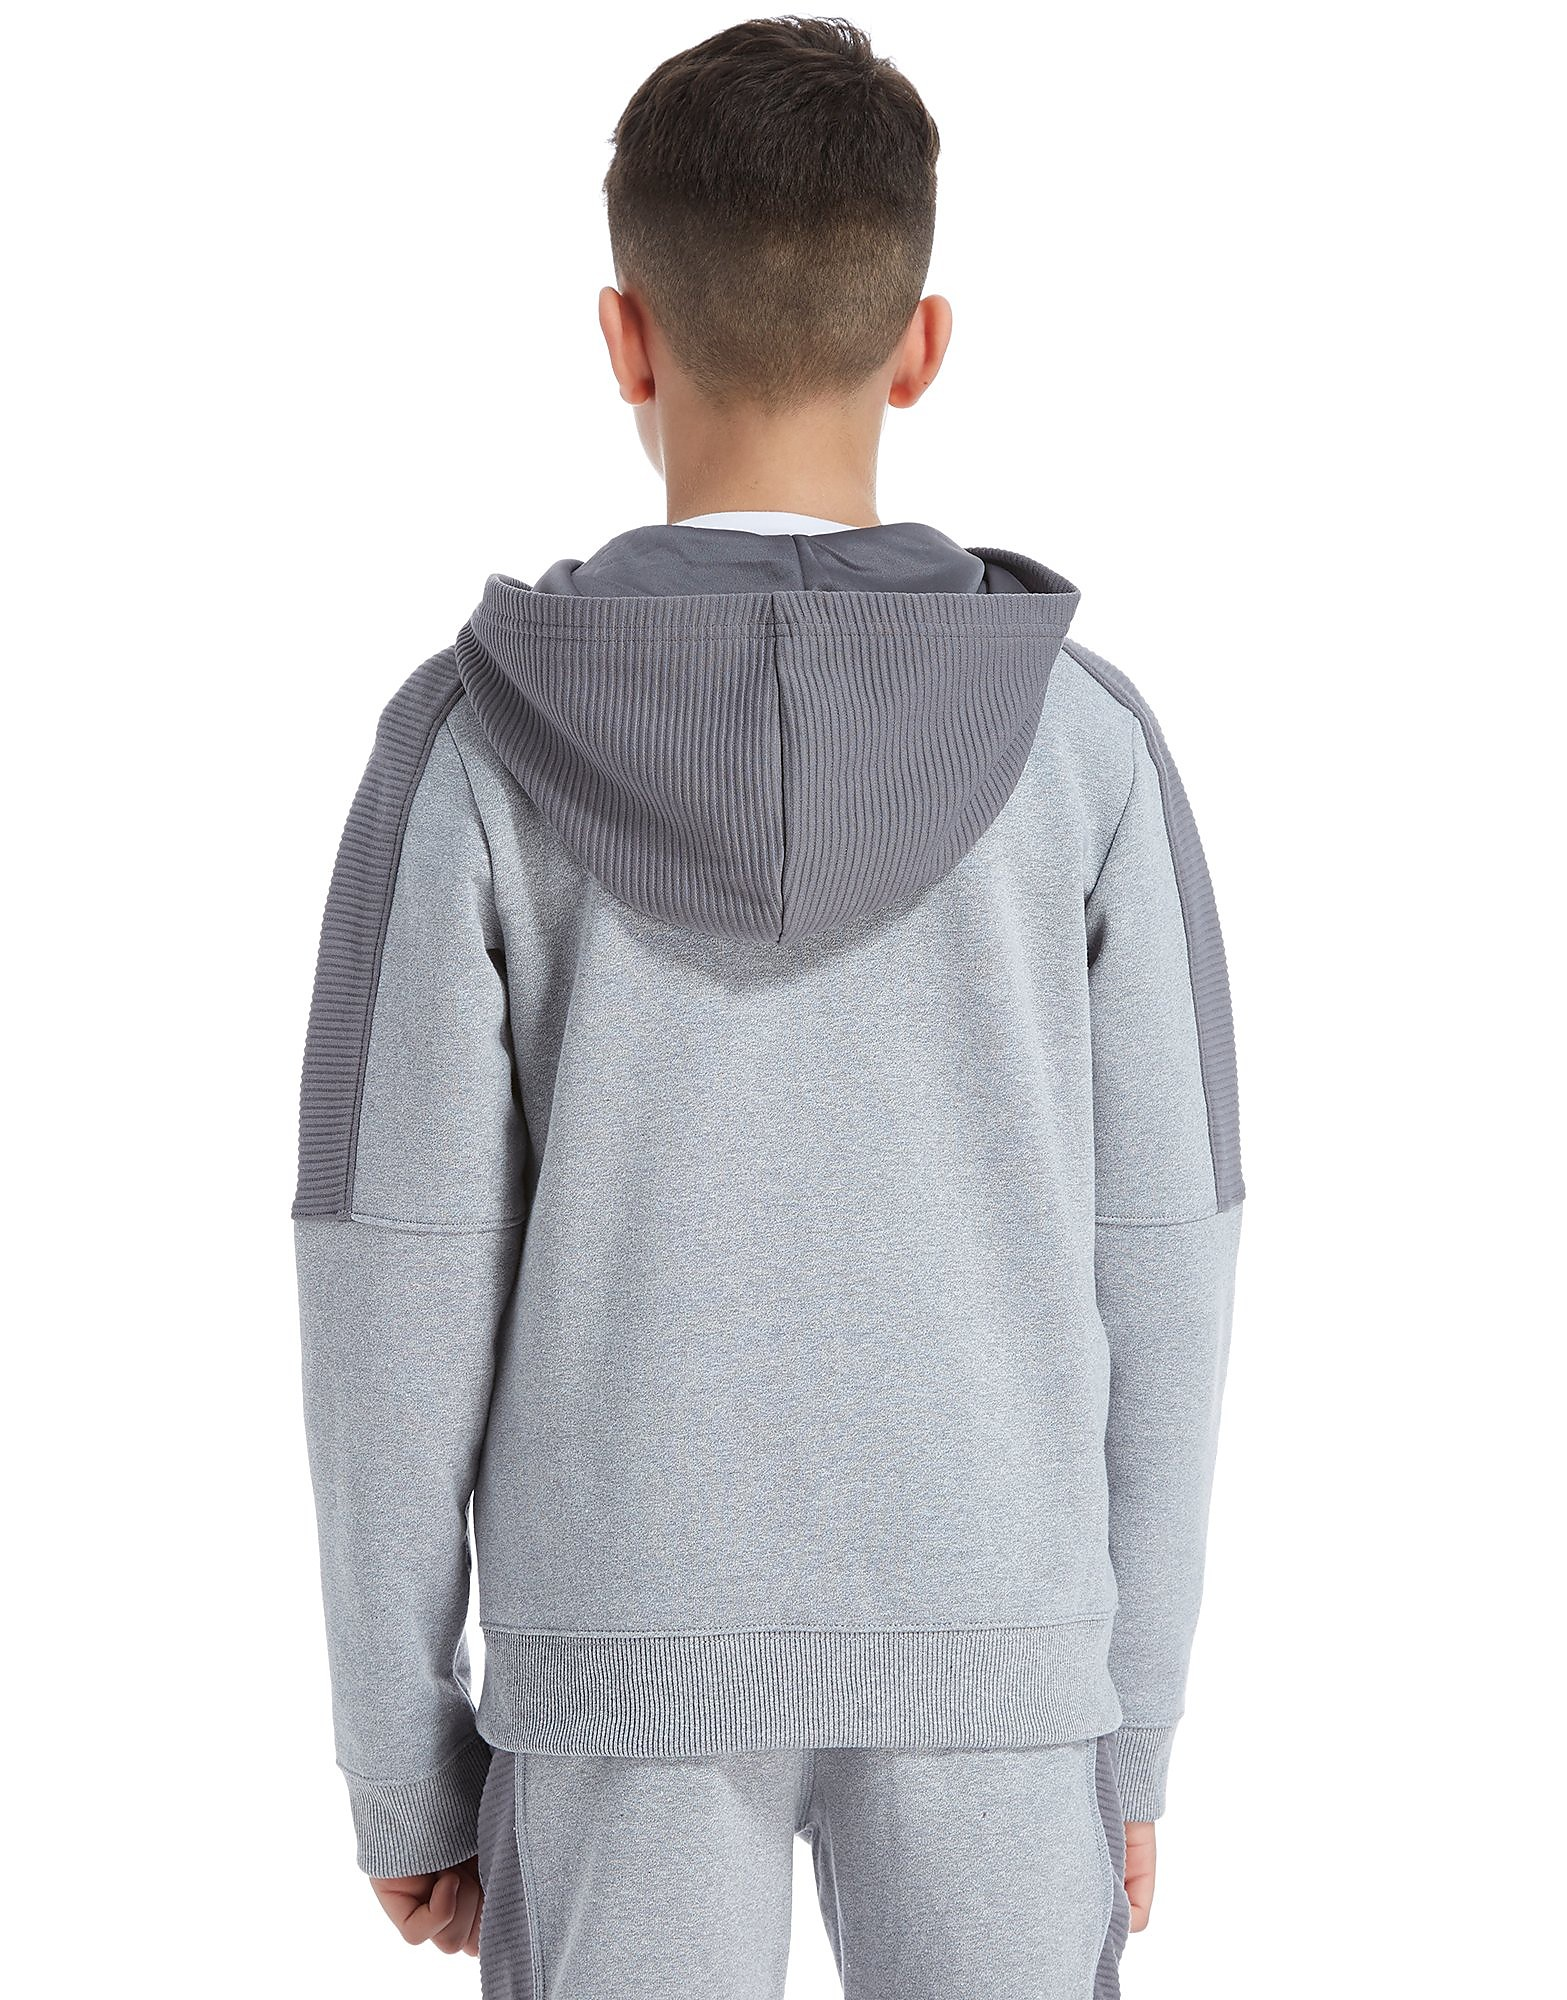 Under Armour Threadborne Full Zip Hoodie Junior